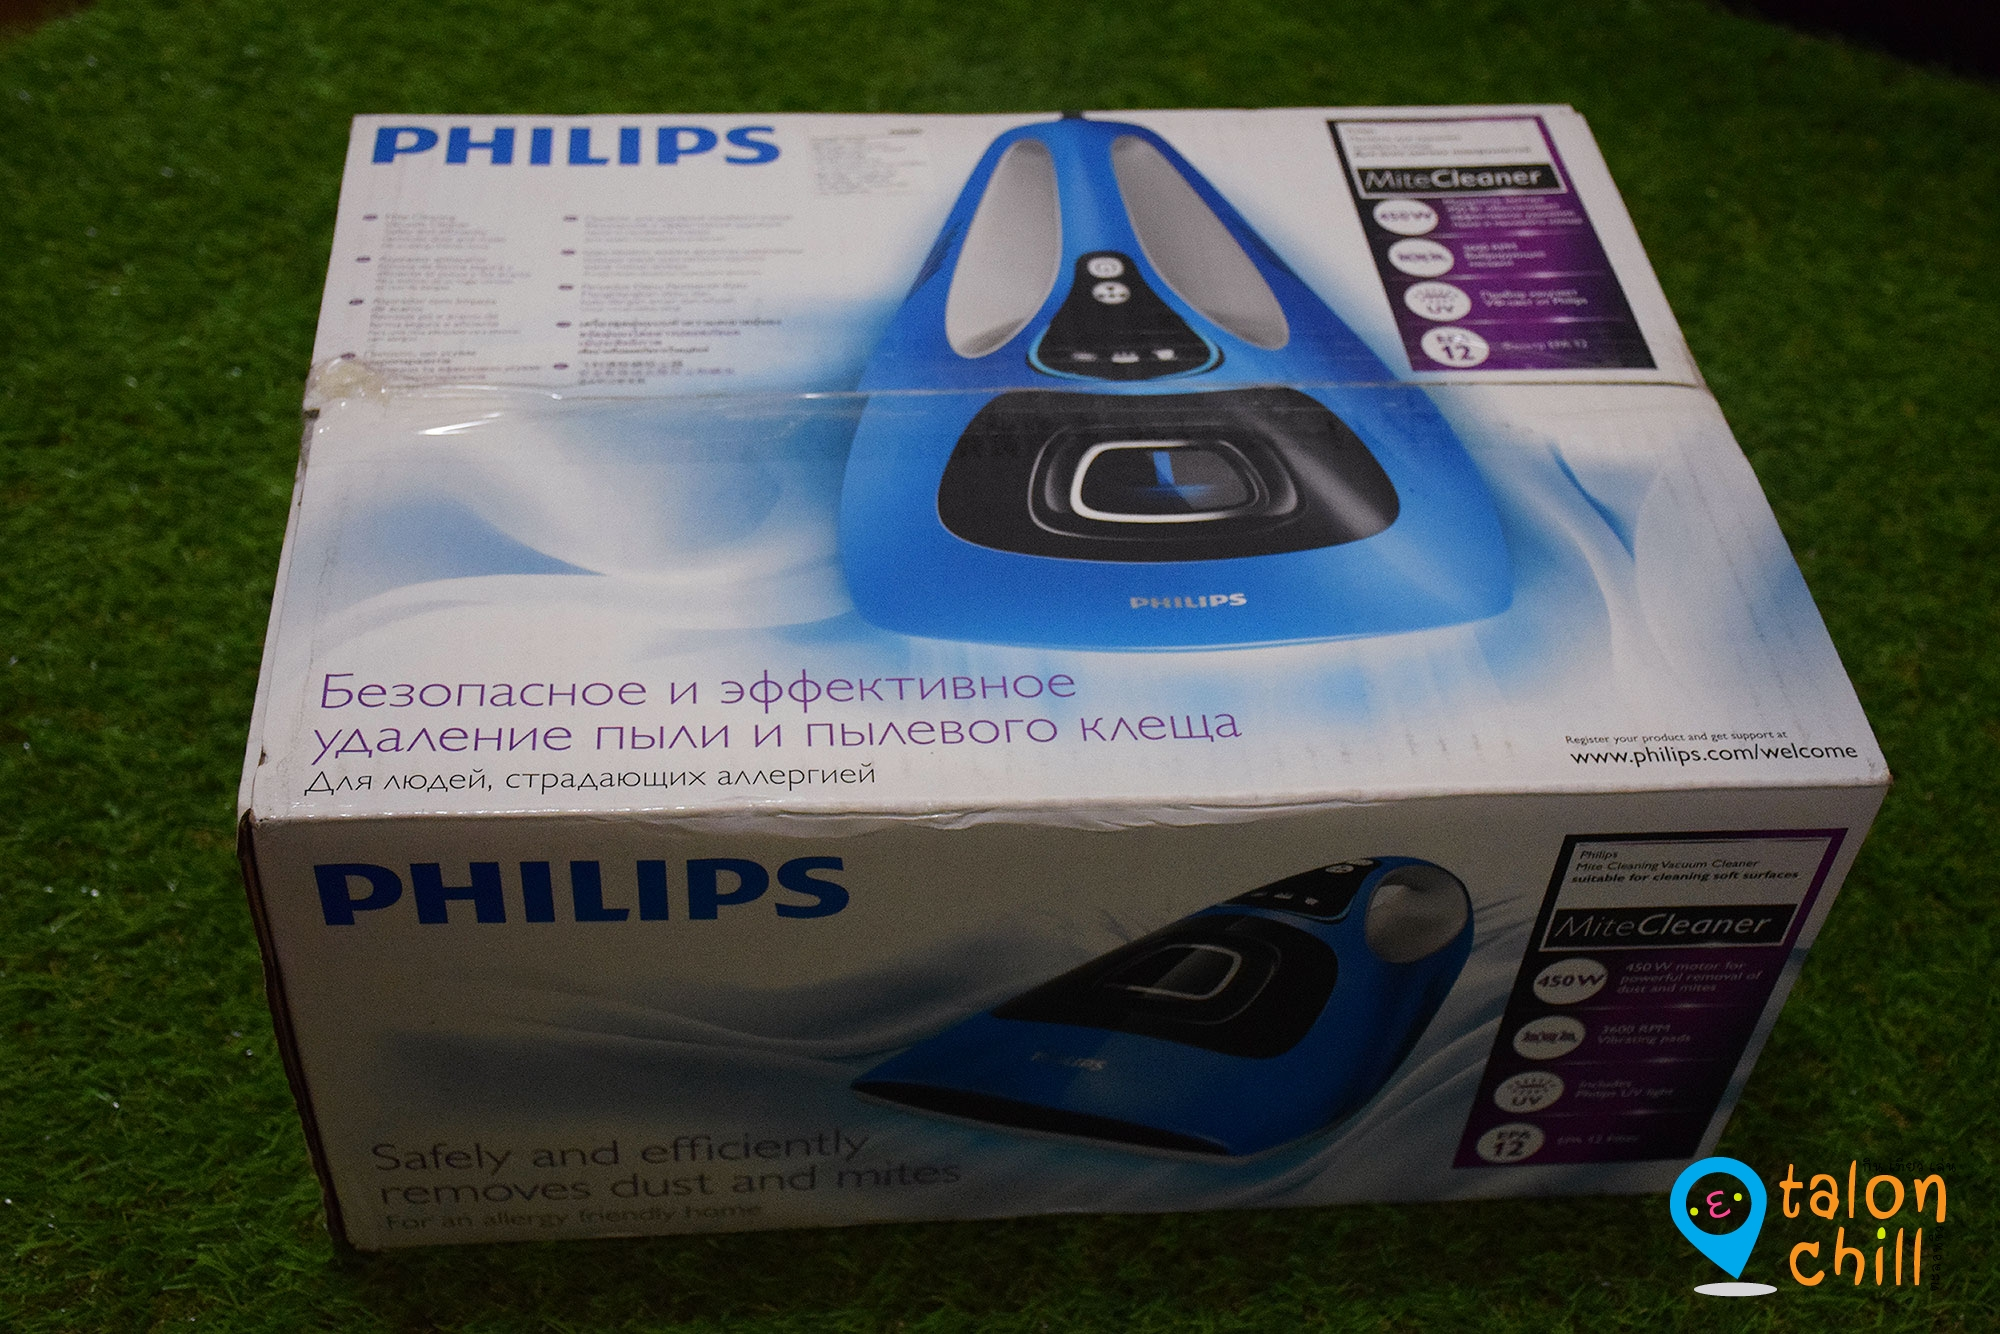 review_philips_mite_cleaner1